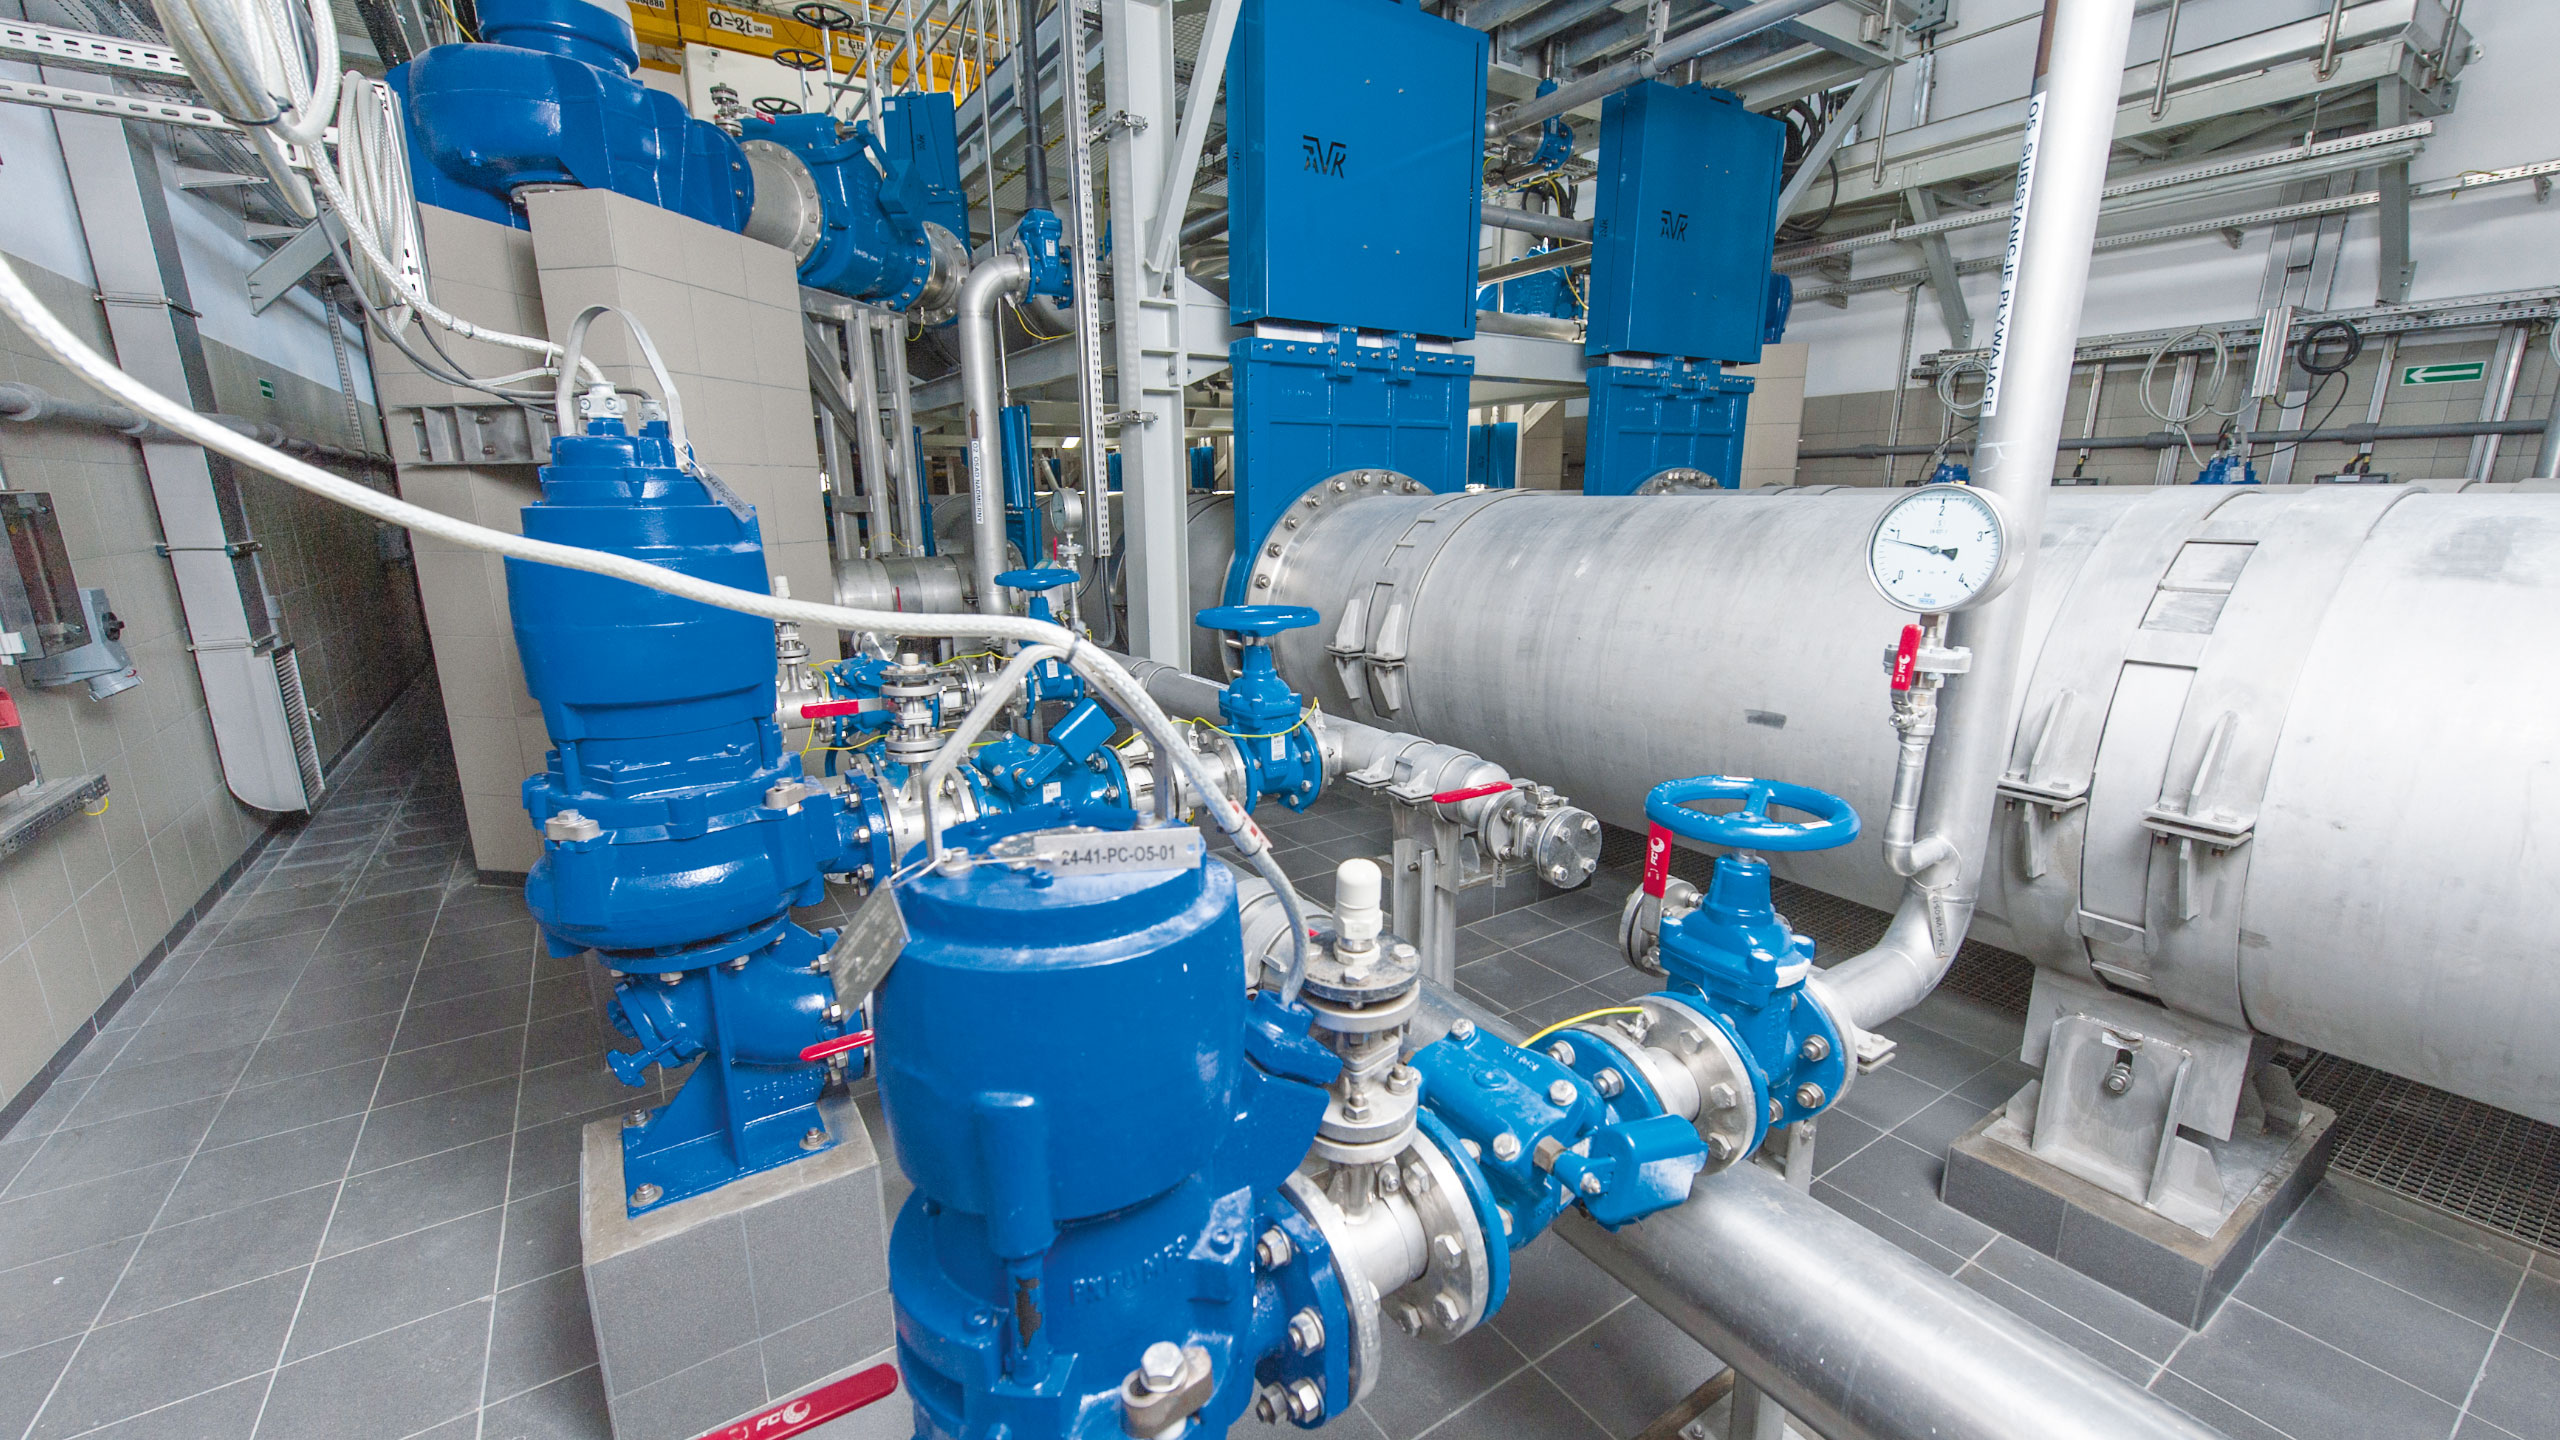 Knife gate valves from AVK installed at Czajka wastewater treatment plant